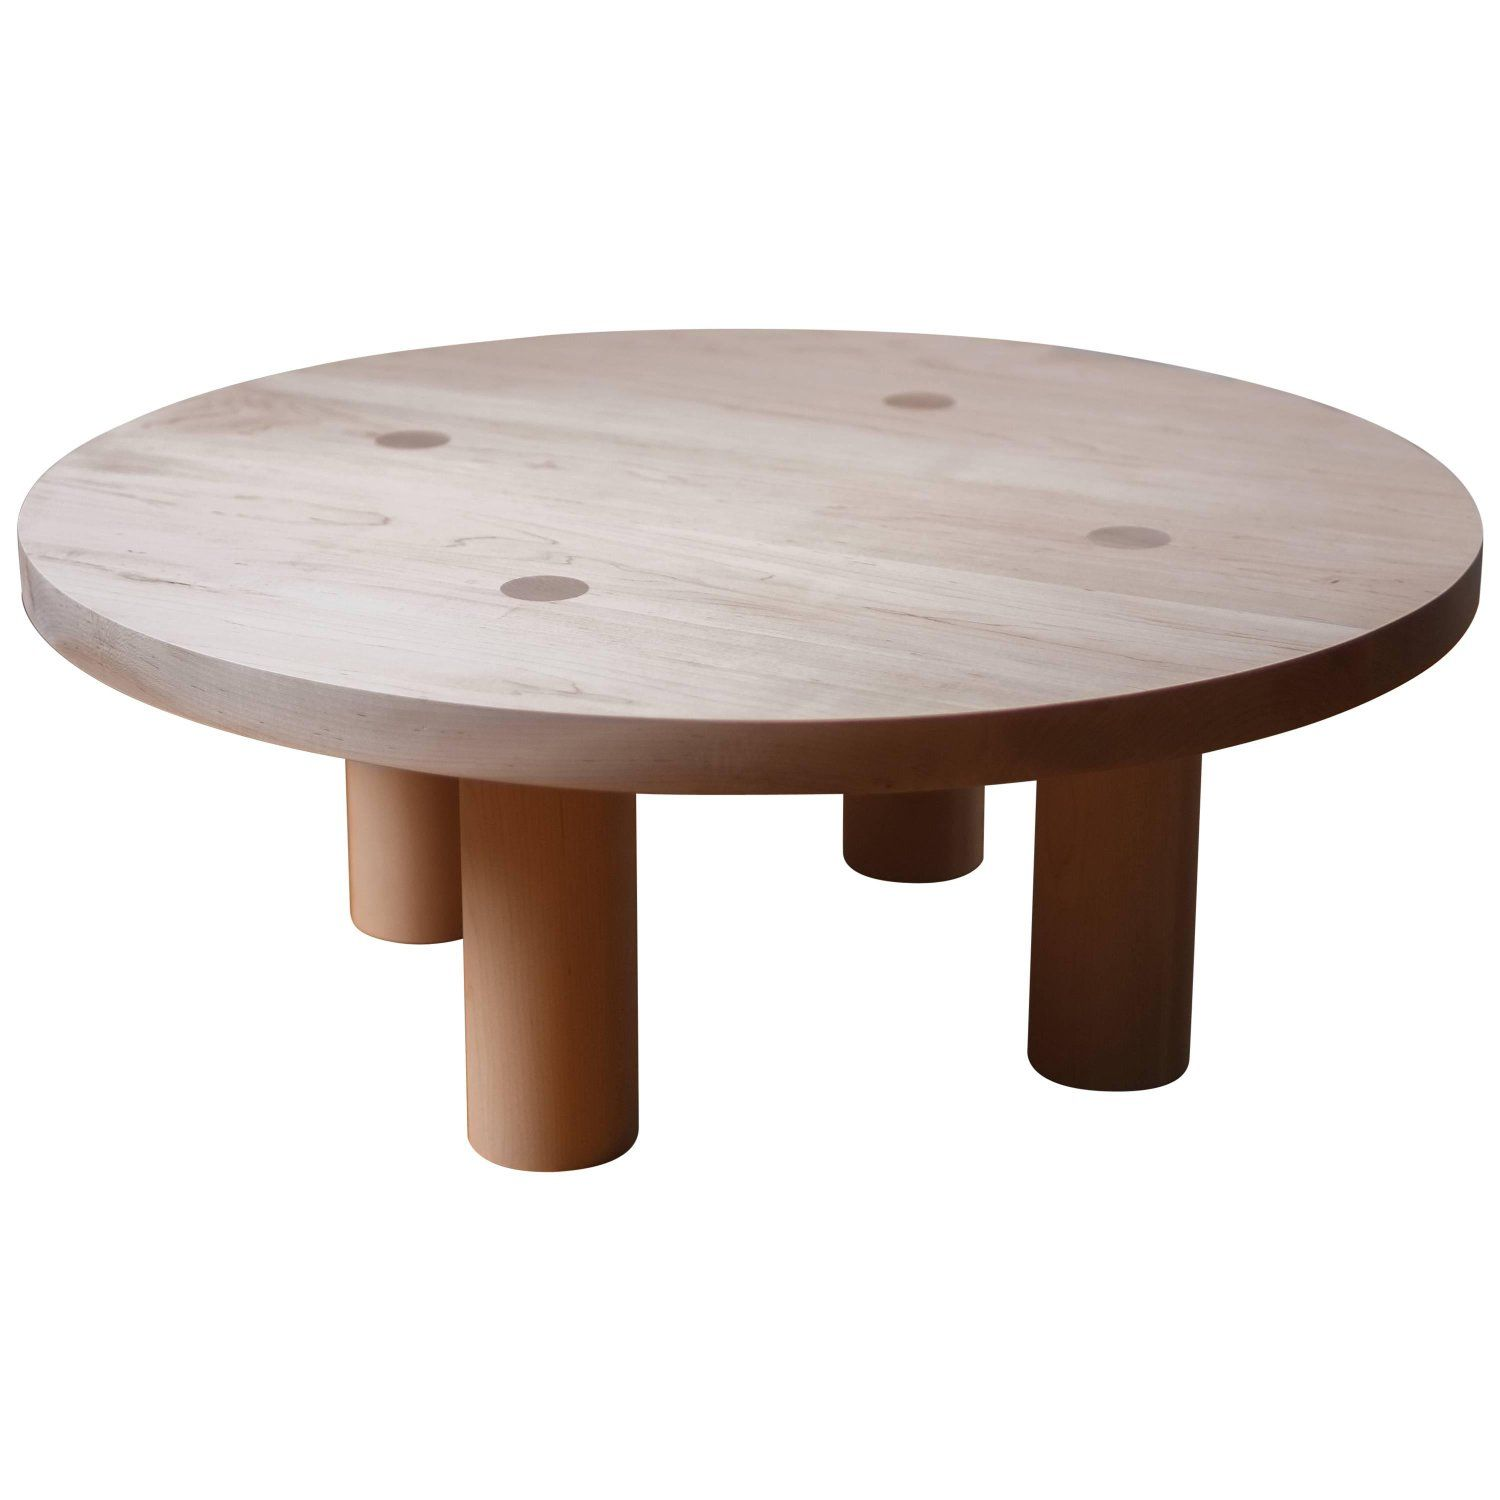 Contemporary Wood Column Coffee Table In White Oak By Fort Standard Wood Cocktail Table Coffee Table White Oak Coffee Table [ 1500 x 1500 Pixel ]